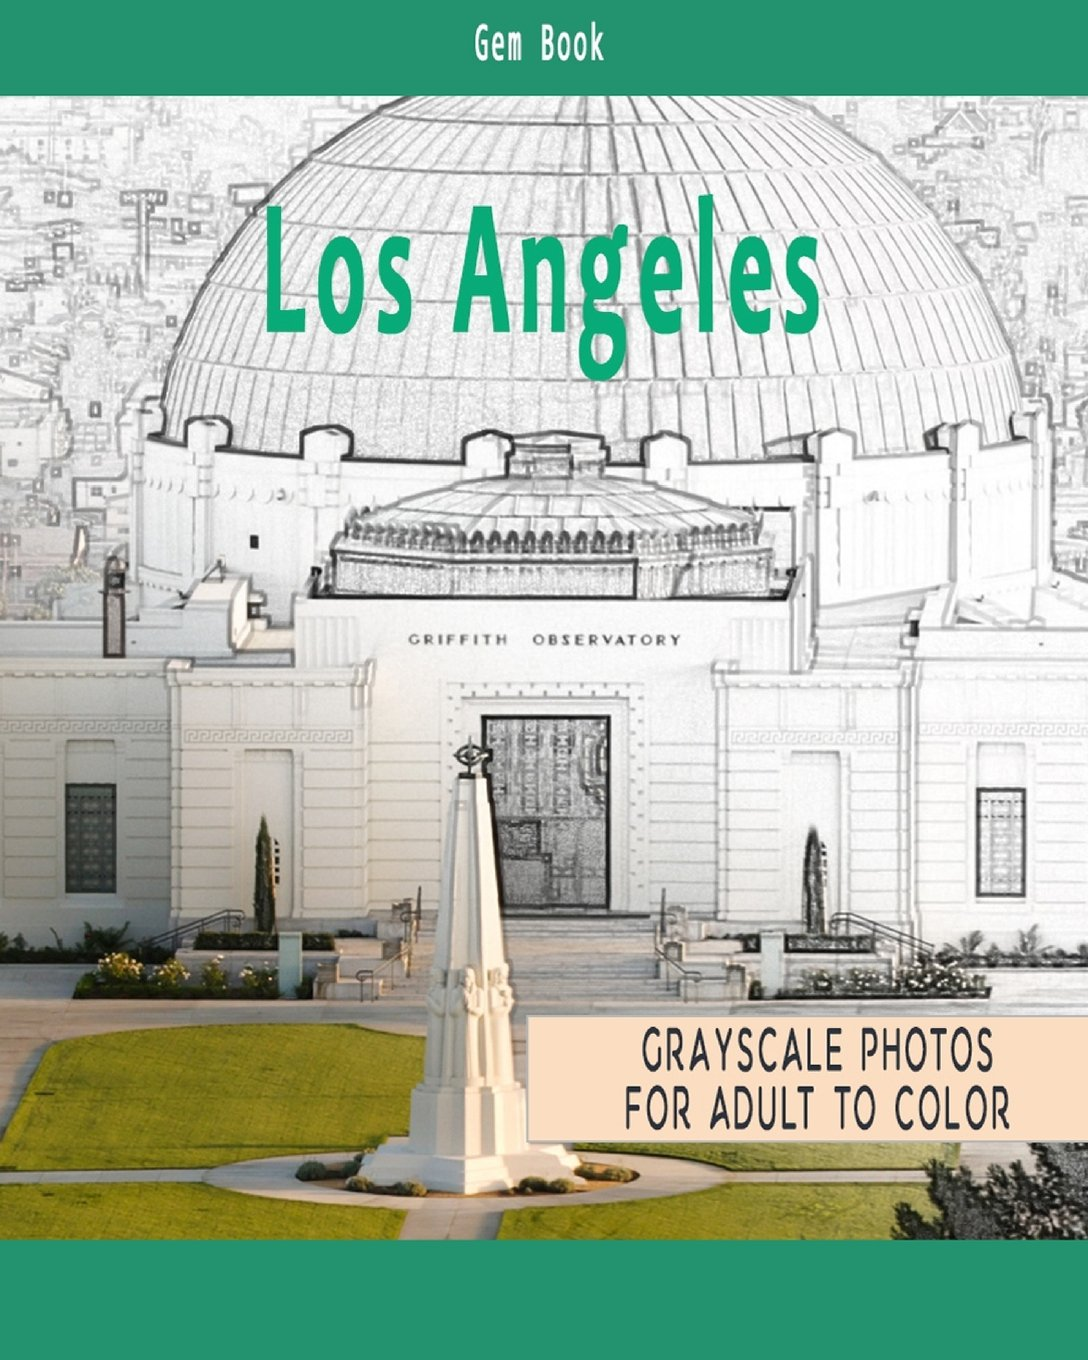 Beautiful Cities: A Grayscale Adult Coloring Book of Cities, Los Angeles USA: Coloring Books for Grown-Ups (Volume 1)